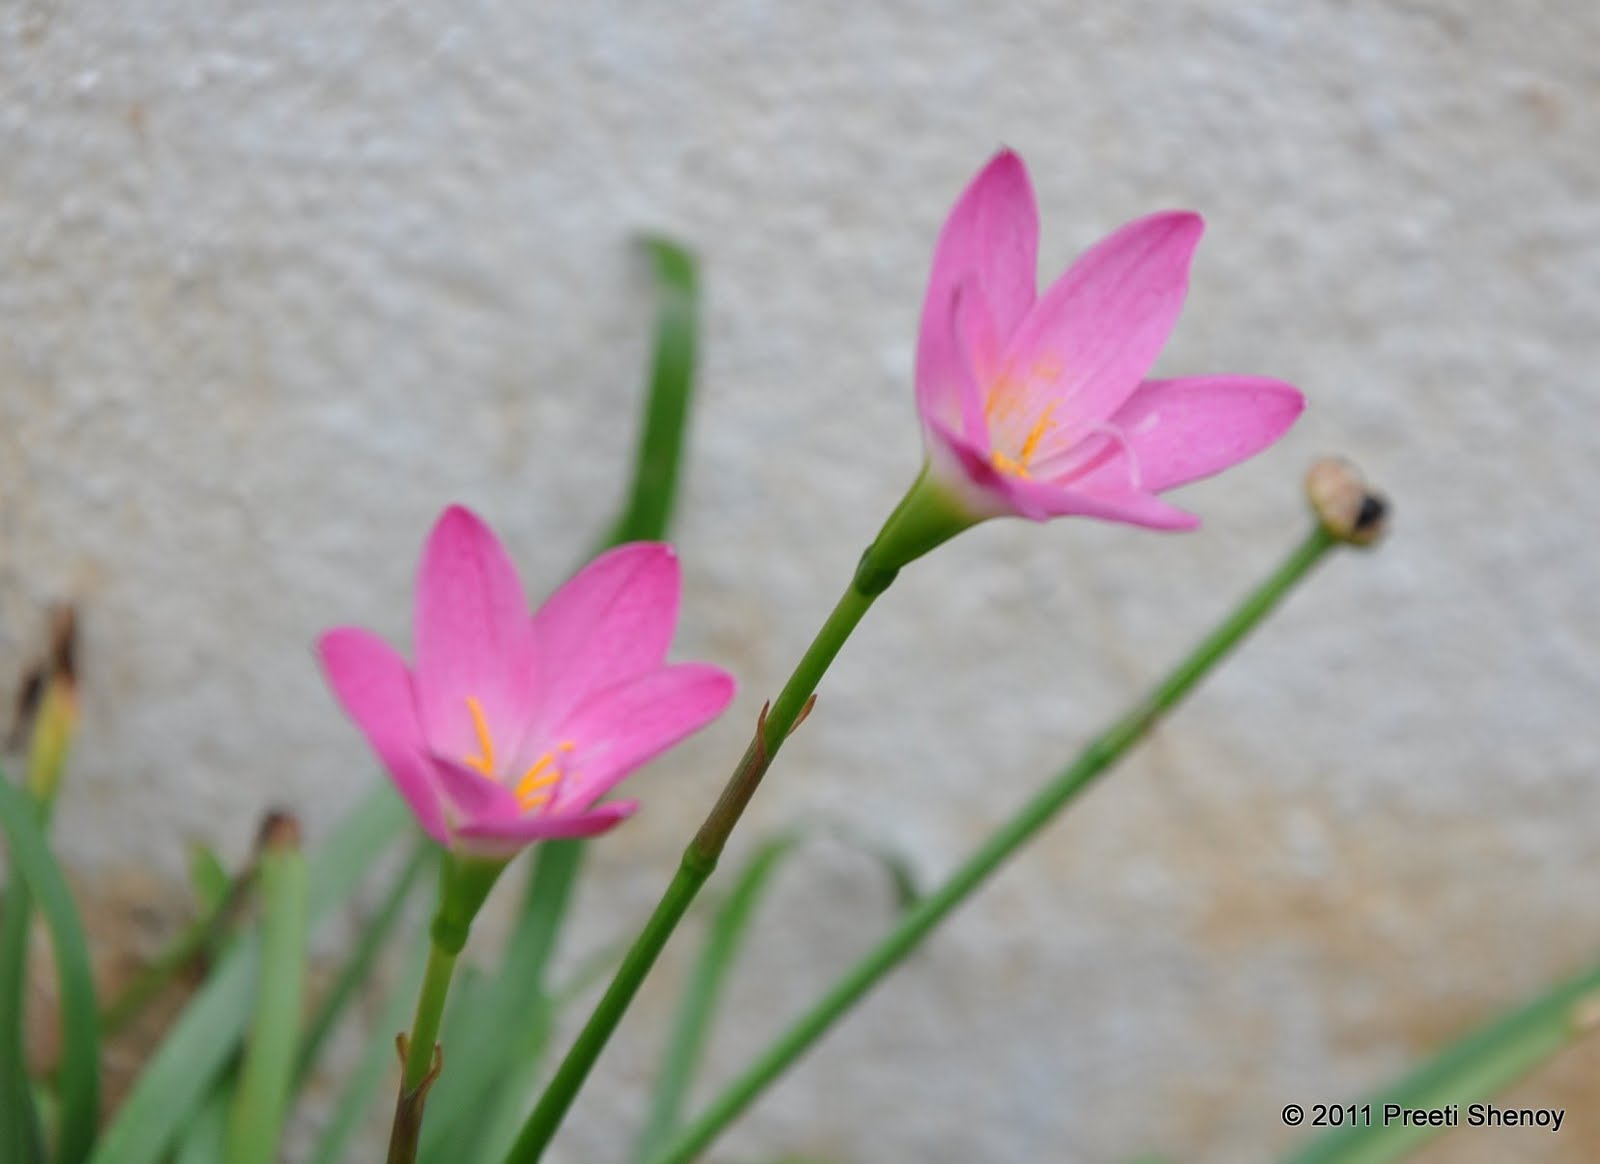 preeti shenoy's blog. some flowers from my garden, Beautiful flower